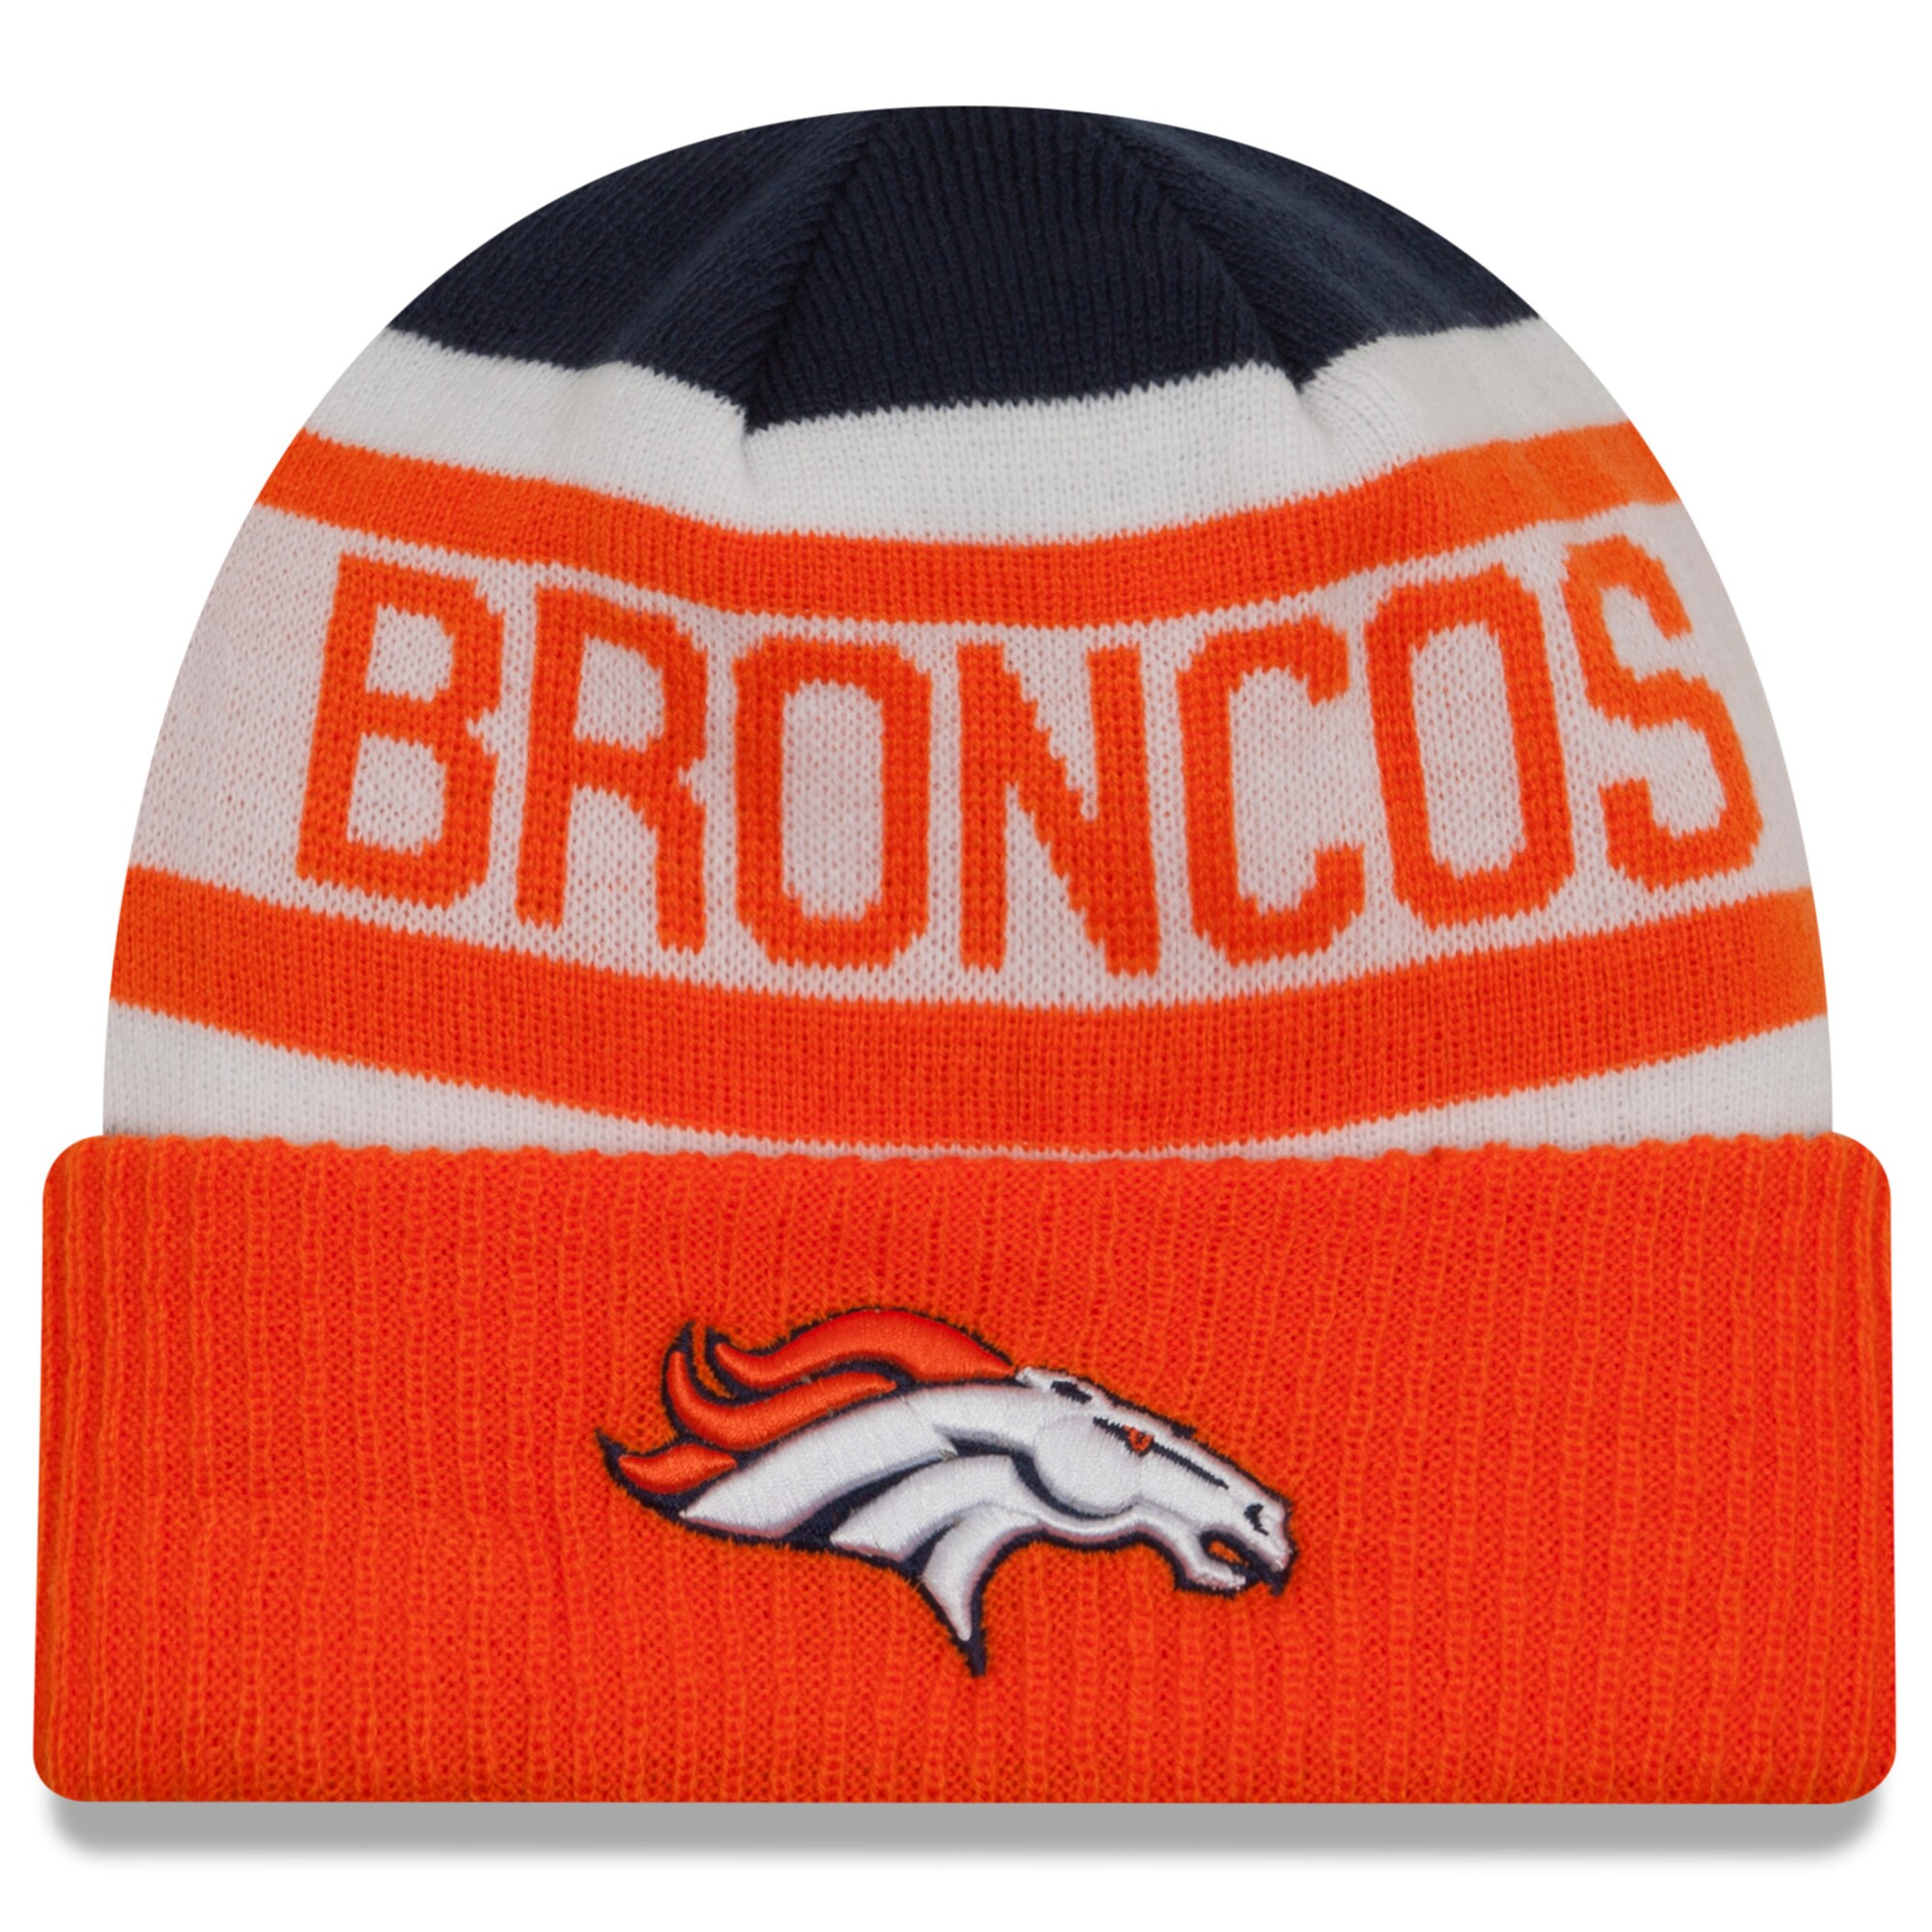 Denver Broncos New Era Biggest Fan 2.0 Cuffed Knit Hat - Navy/Orange